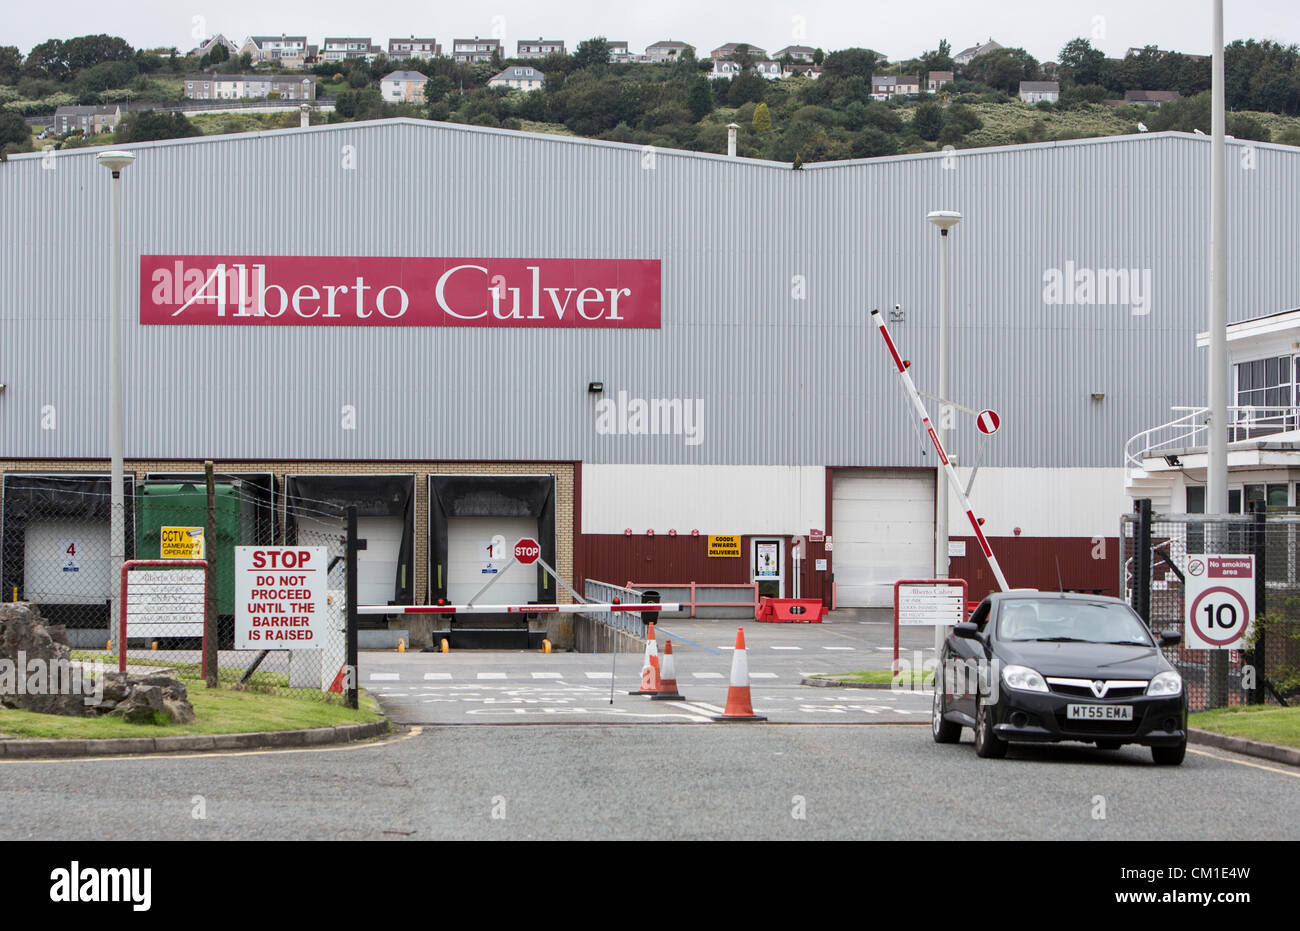 Swansea, UK. 13th September 2012. 13.09.12 The Unilever owned Alberto Culver Factory in Swansea, which is set to - Stock Image